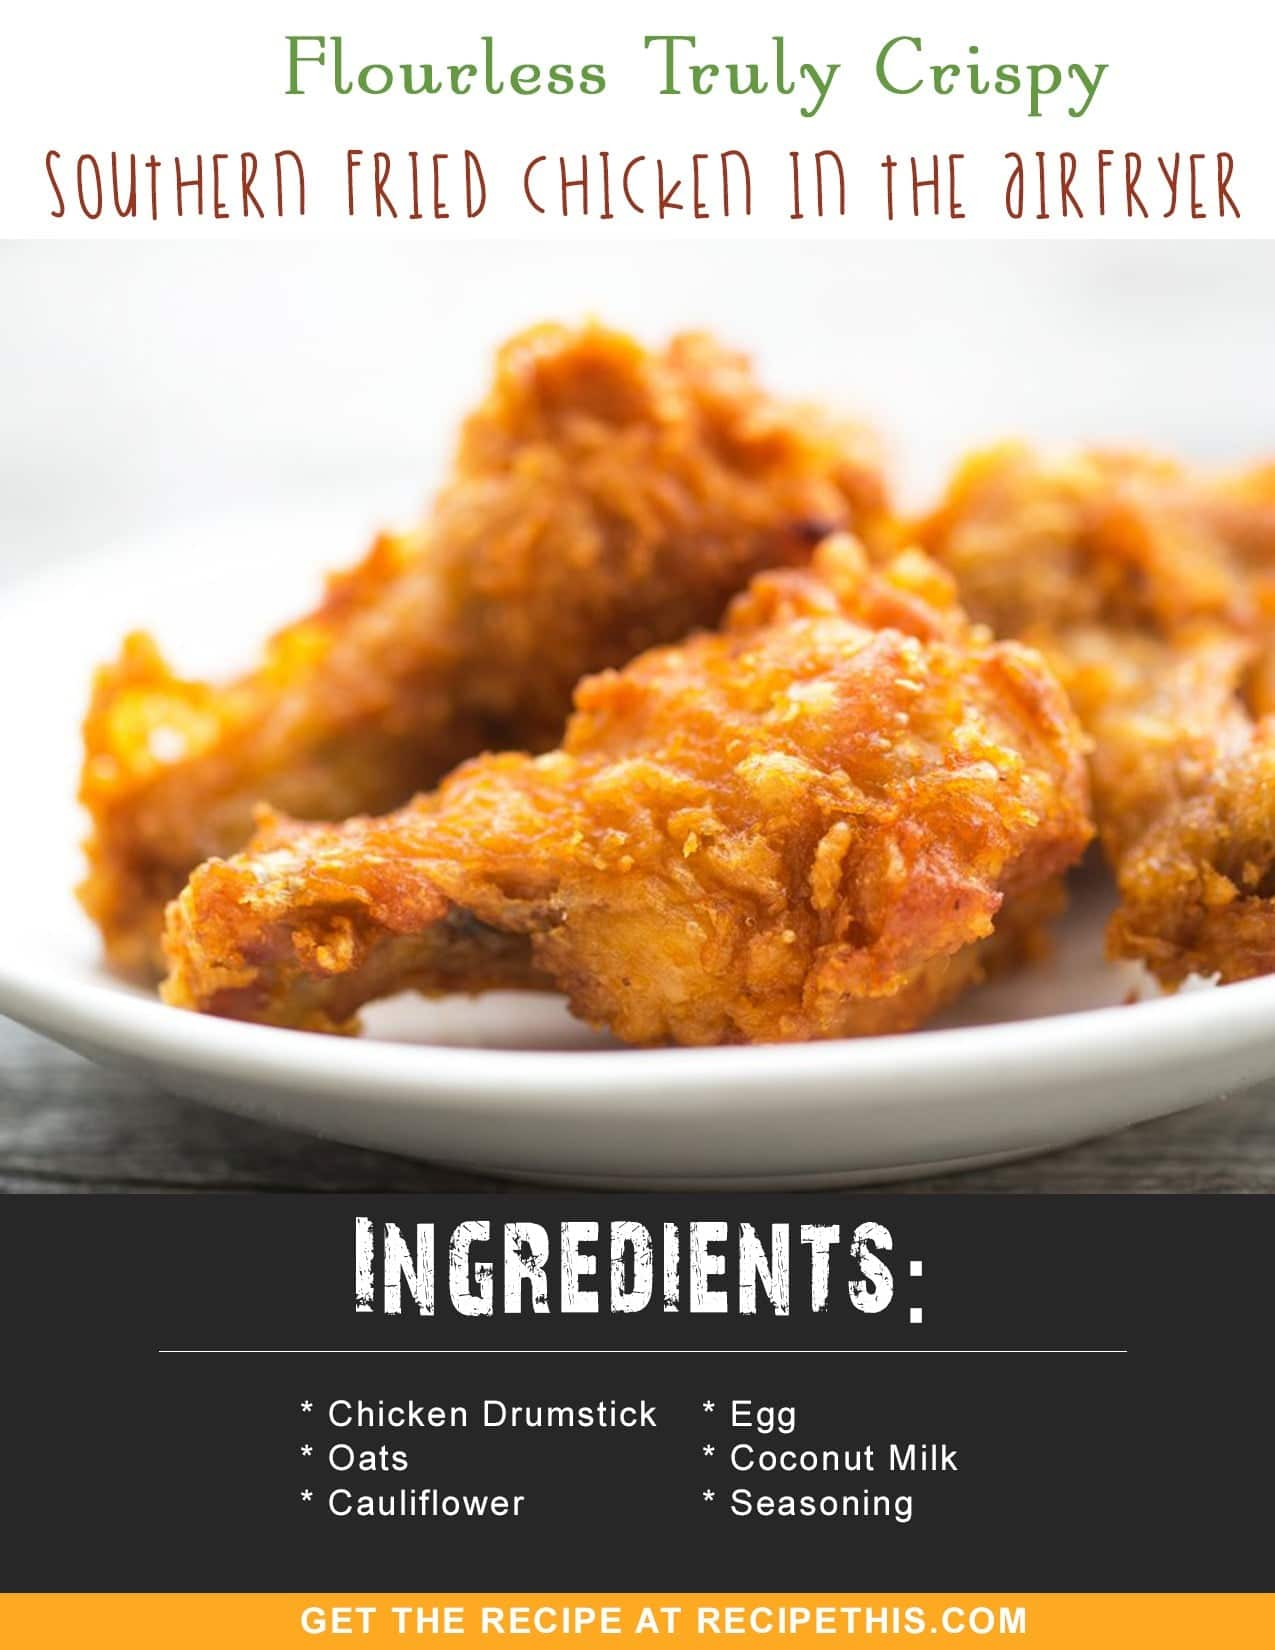 Flourless truly crispy southern fried chicken in the air fryer flourless truly crispy southern fried chicken in the air fryer recipe this forumfinder Gallery